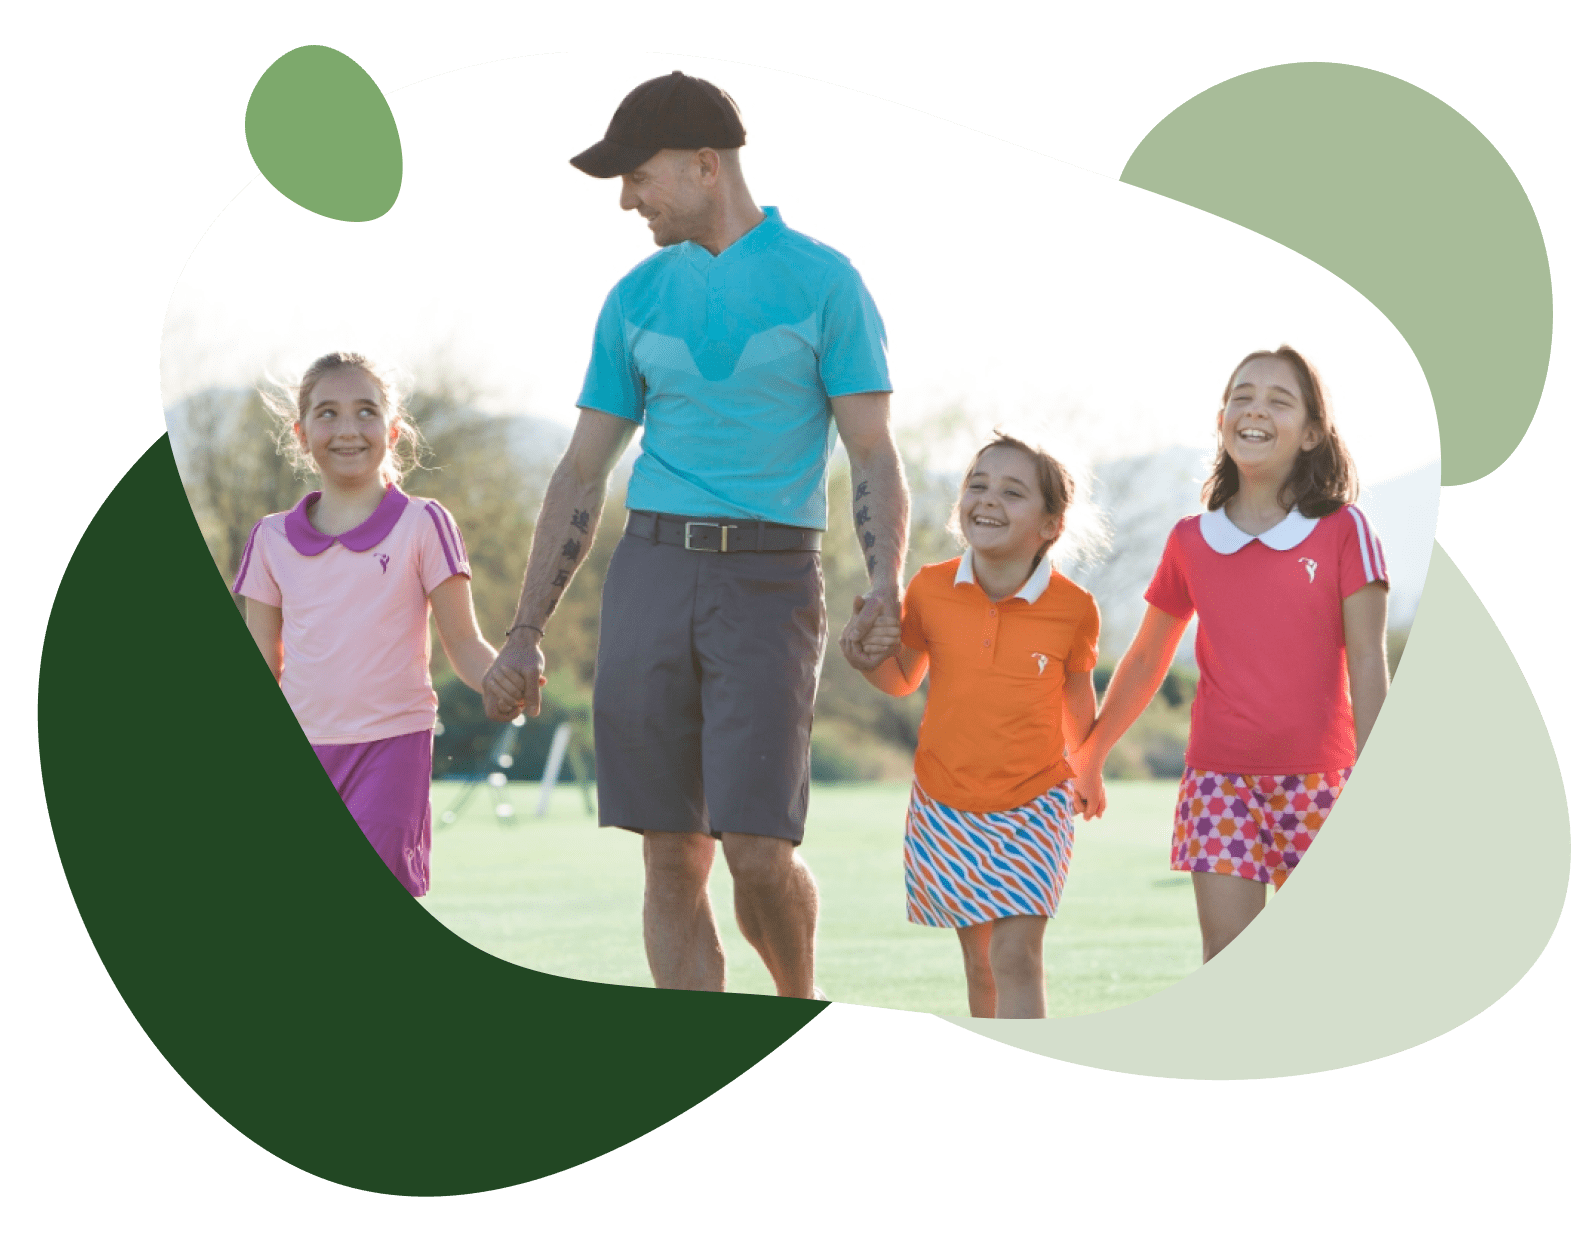 scott petinga on a golf course holding hands with his three smiling daughters wearing wynnr kid's golf clothing brand.